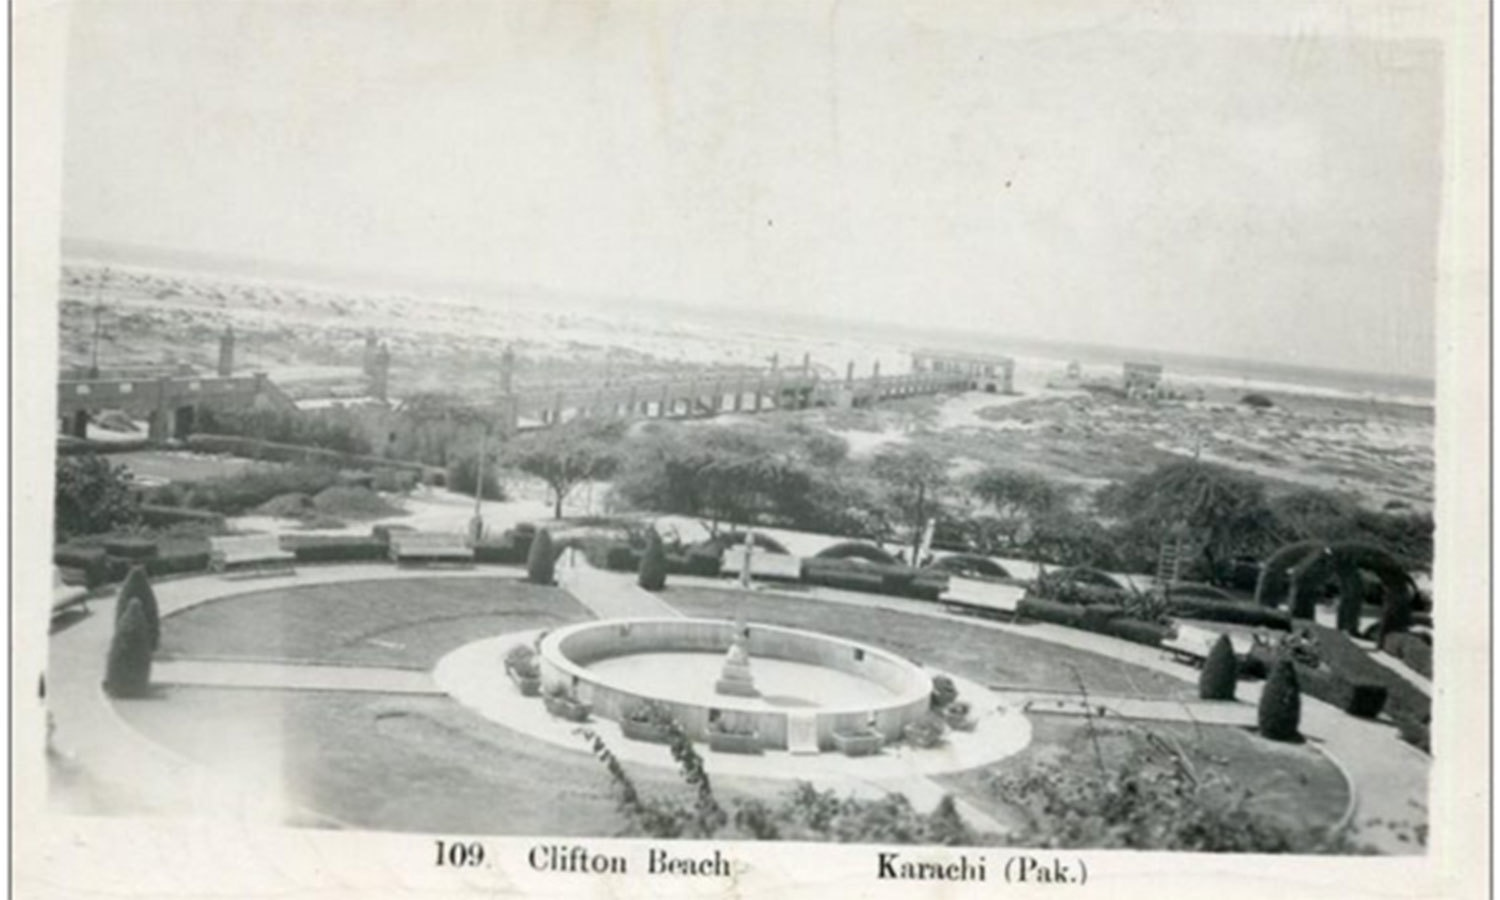 The future Sea View area at the Clifton Beach in the 1940s.